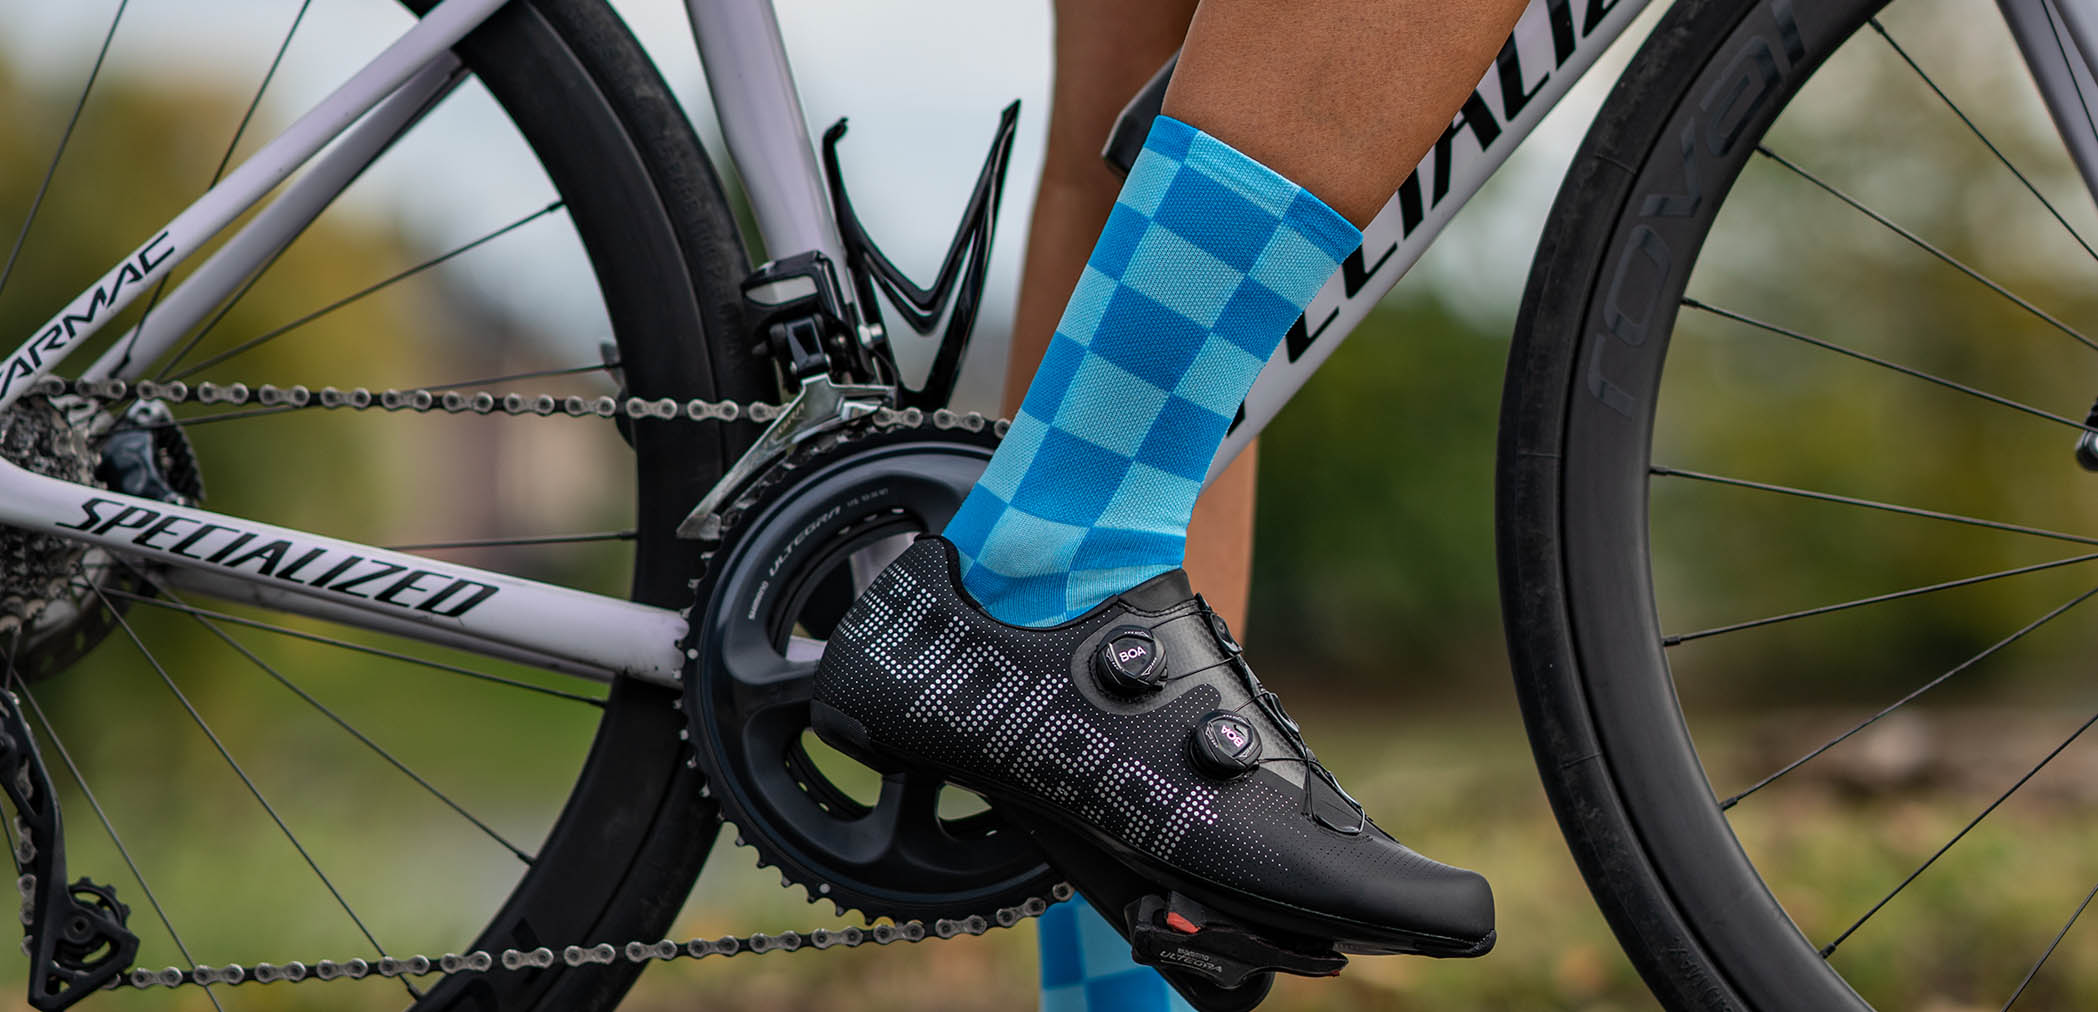 chequered pattern on the blue Luxa Squares cycling socks and suplest road shoes